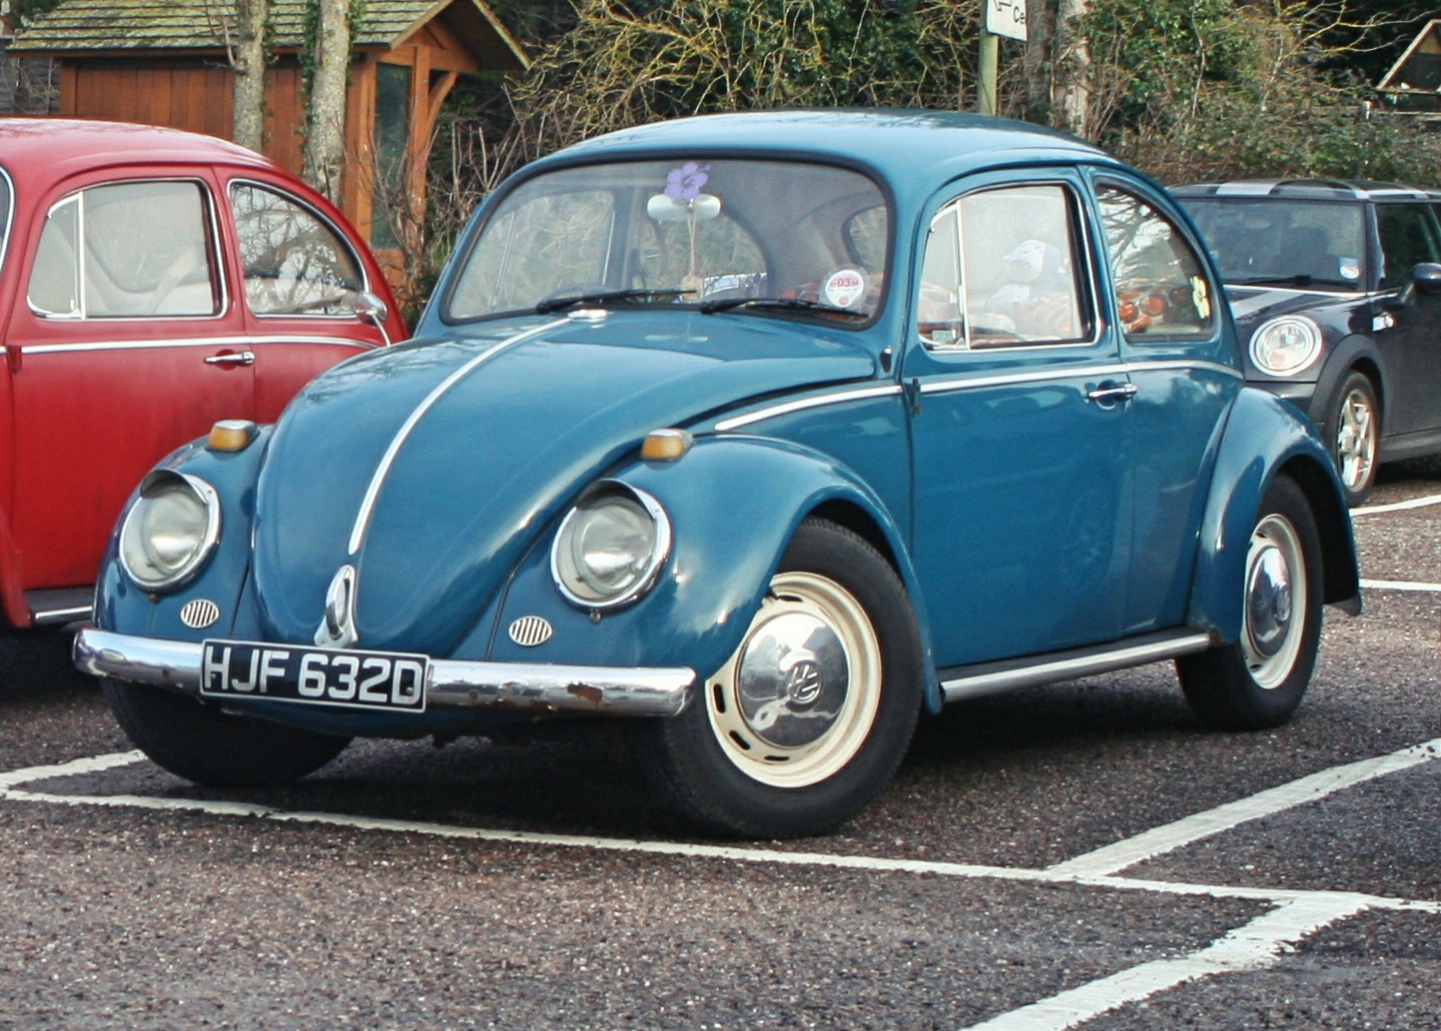 Zoes Beetle 'Doodles'